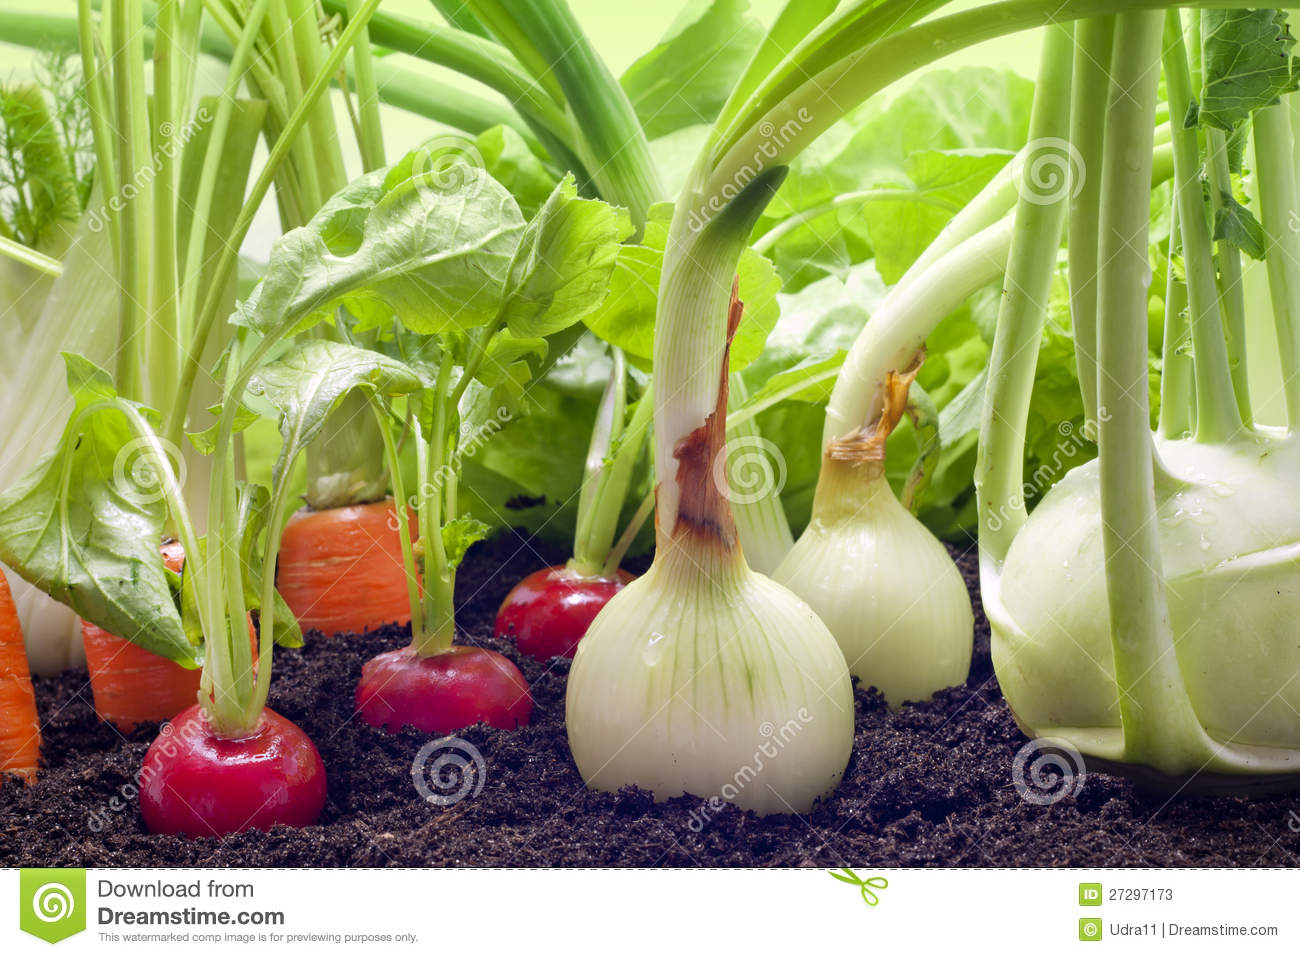 Vegetables growing in the garden stock image image 27297173 for What vegetables to grow